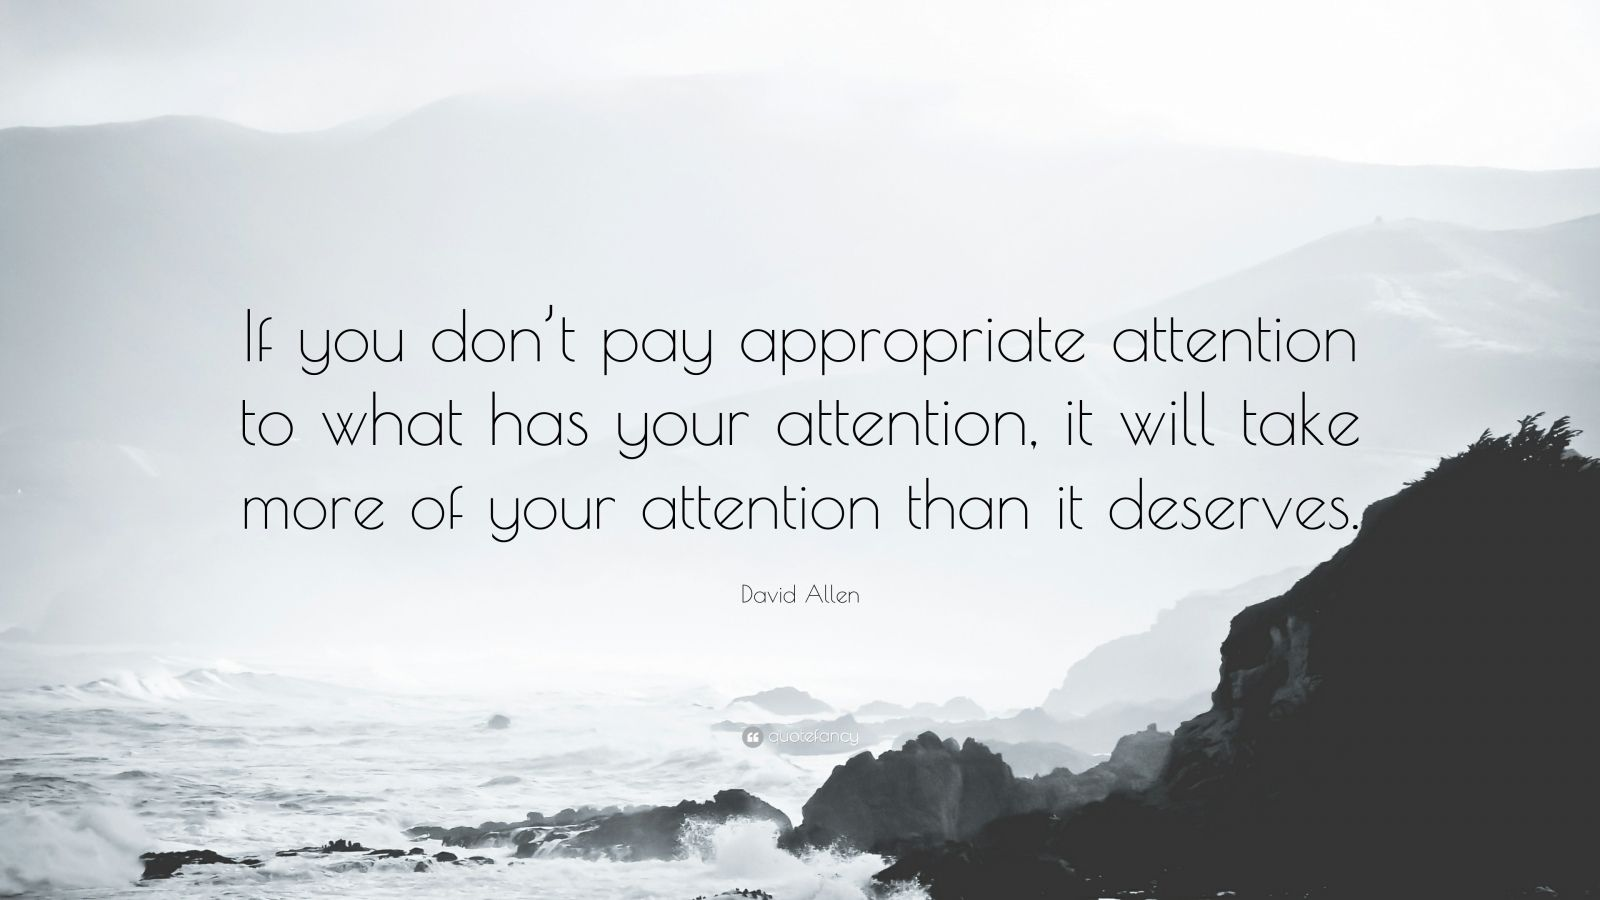 david allen quote if you don t pay appropriate attention to what has your attention it will. Black Bedroom Furniture Sets. Home Design Ideas